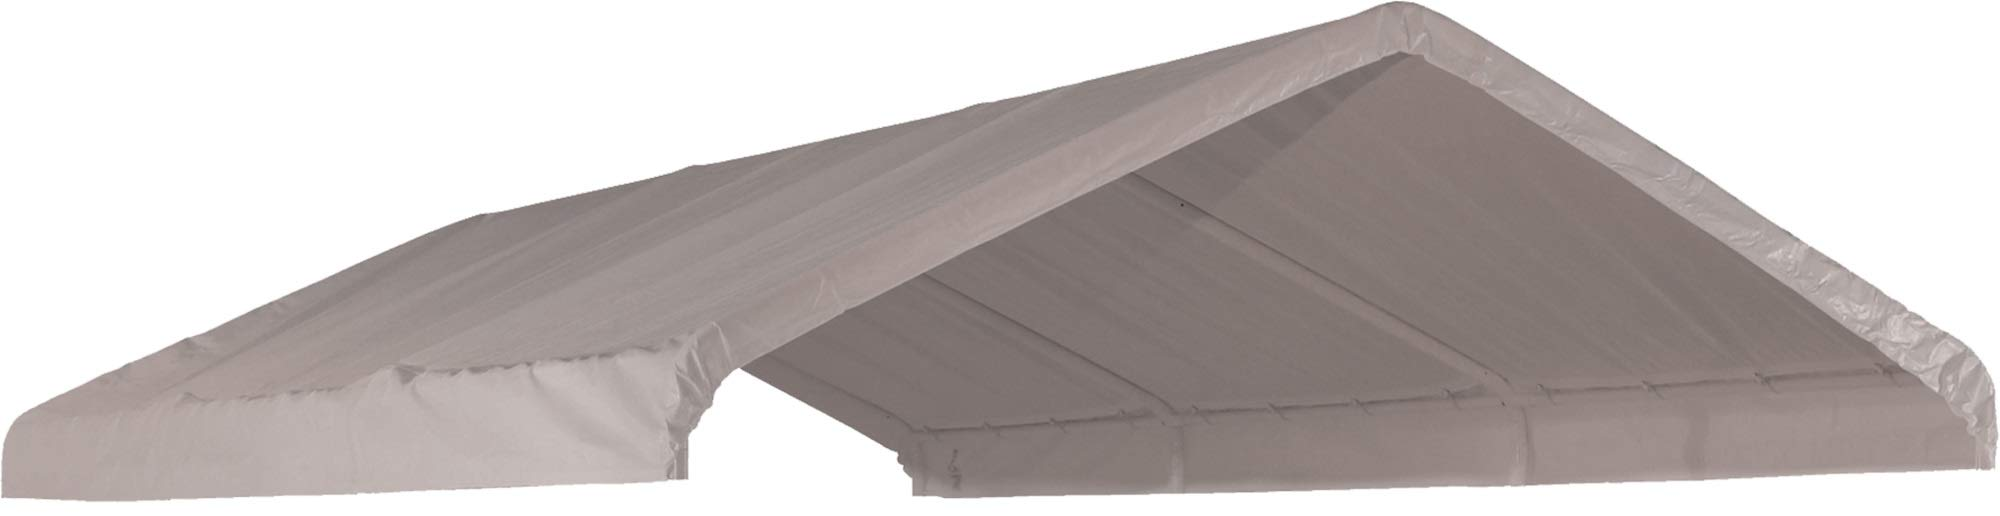 Shelterlogic Supermax All Purpose Outdoor 10 X 20 Feet Canopy Replacement Cover For 2 Inch Frame Canopies Cover Only Frame Not Included Buy Online In Bahrain Brand Shelterlogic Products In Bahrain